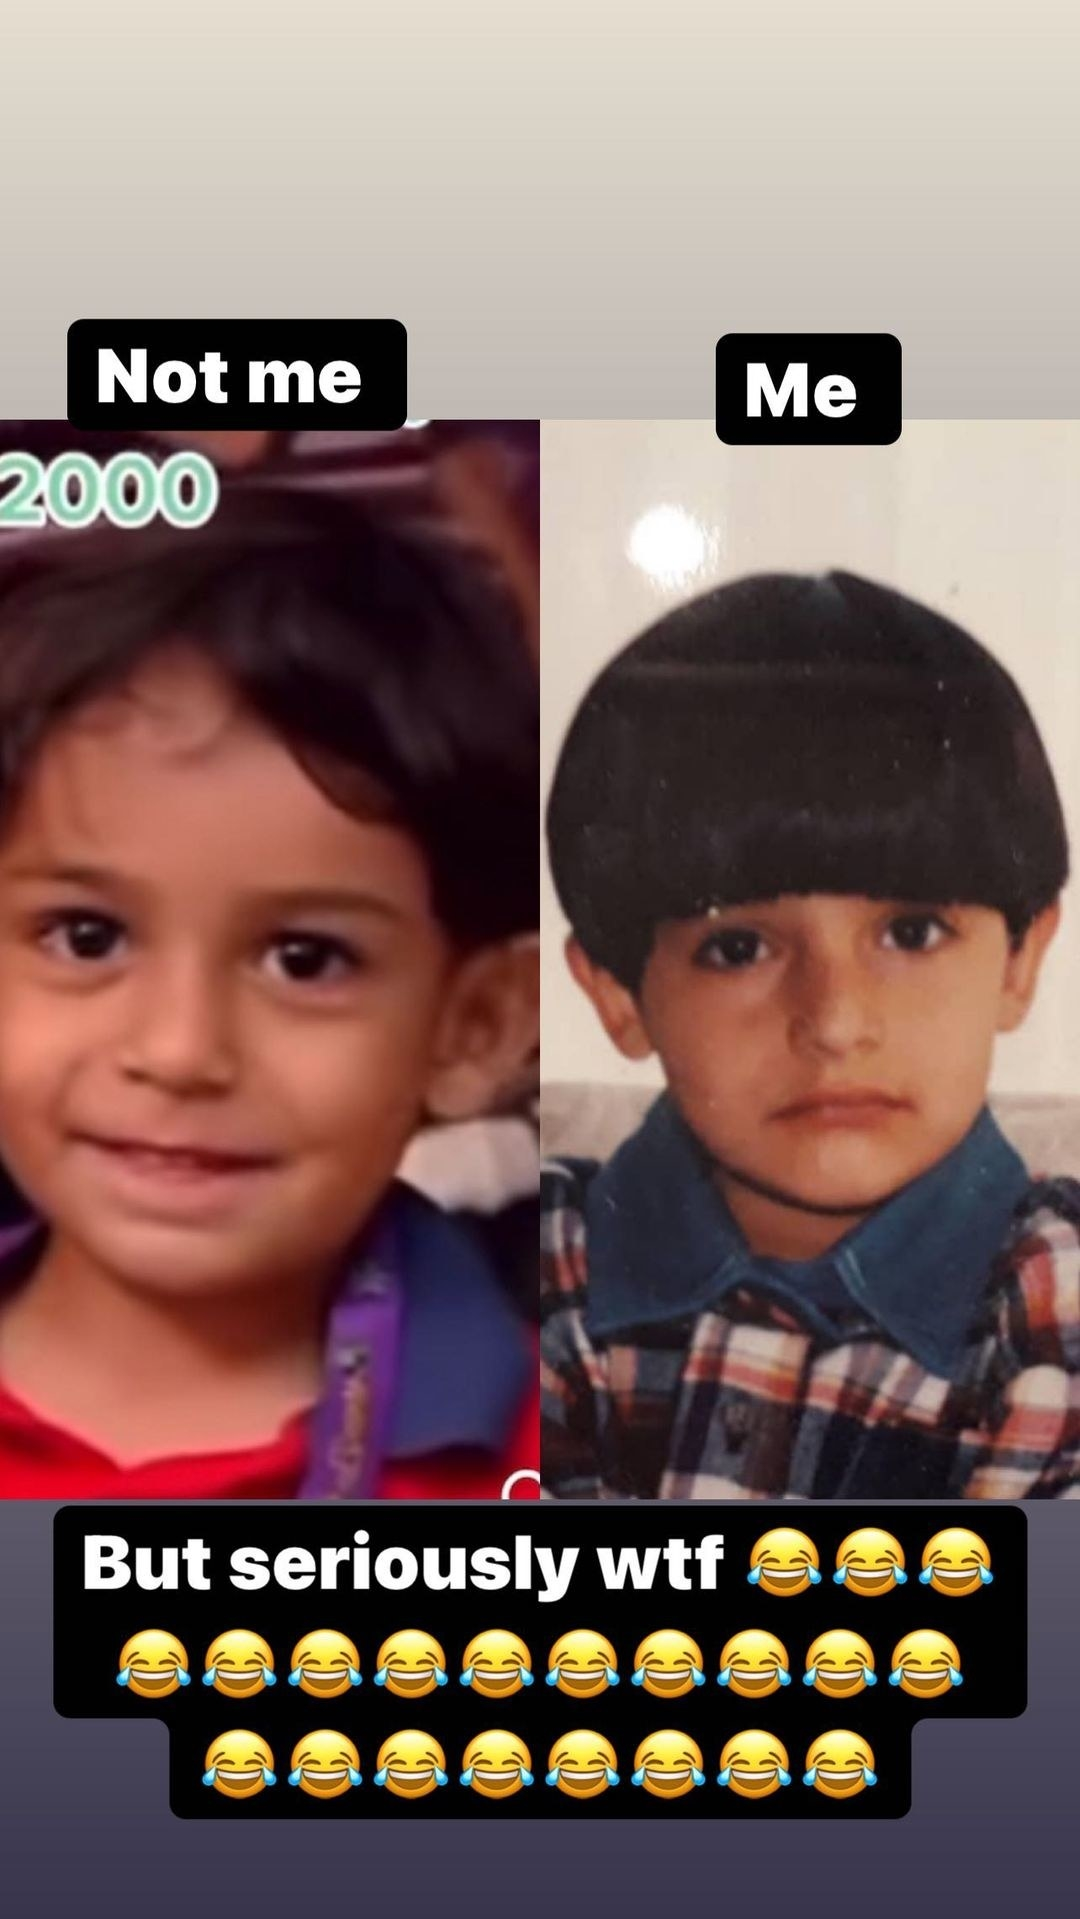 A side by side of the little boy on the left and Sam around that same age on the right